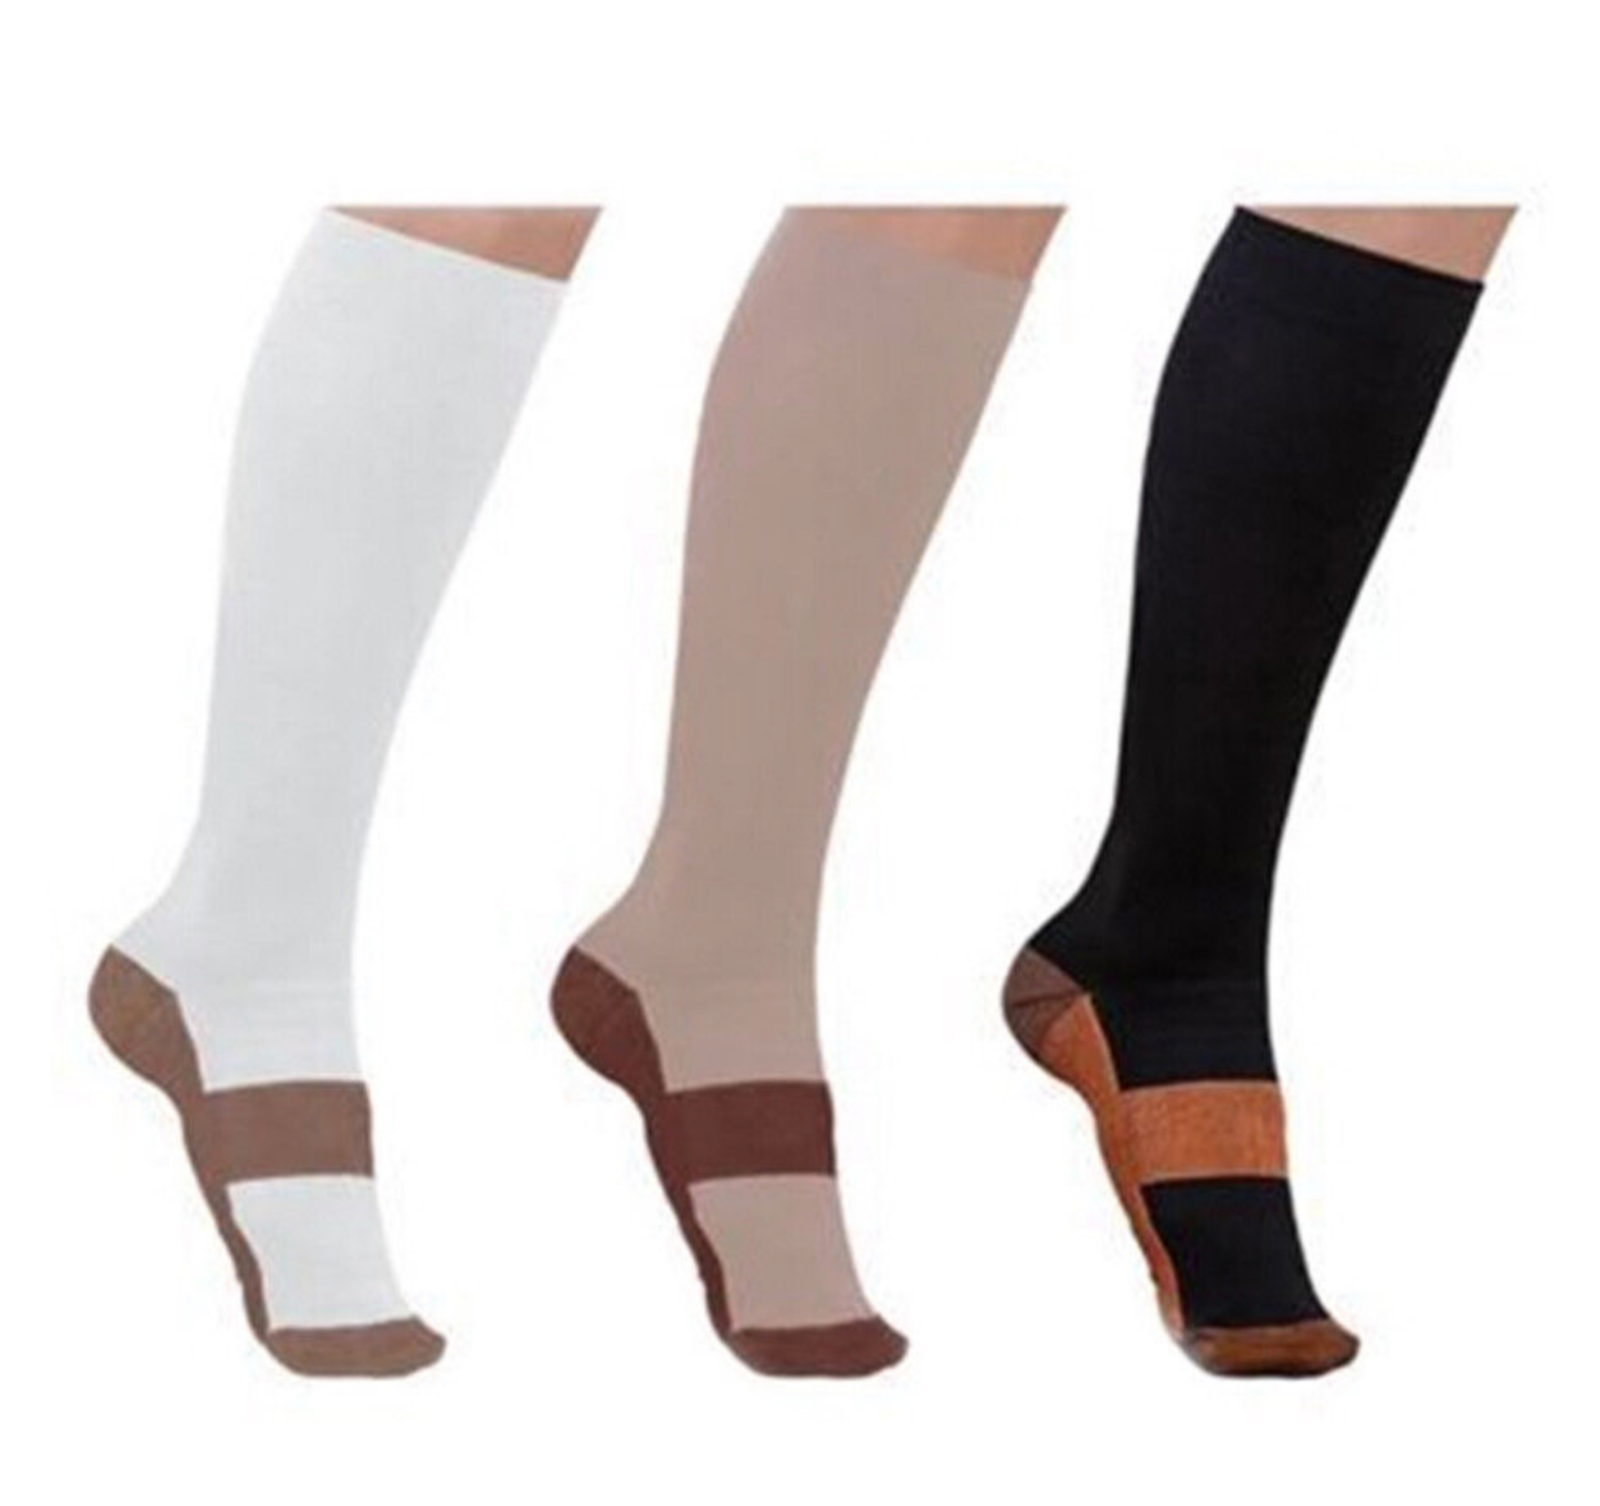 (5 Pairs) Copper Compression 20-30mmHg Graduated Support Socks Mens Womens S-XXL 6